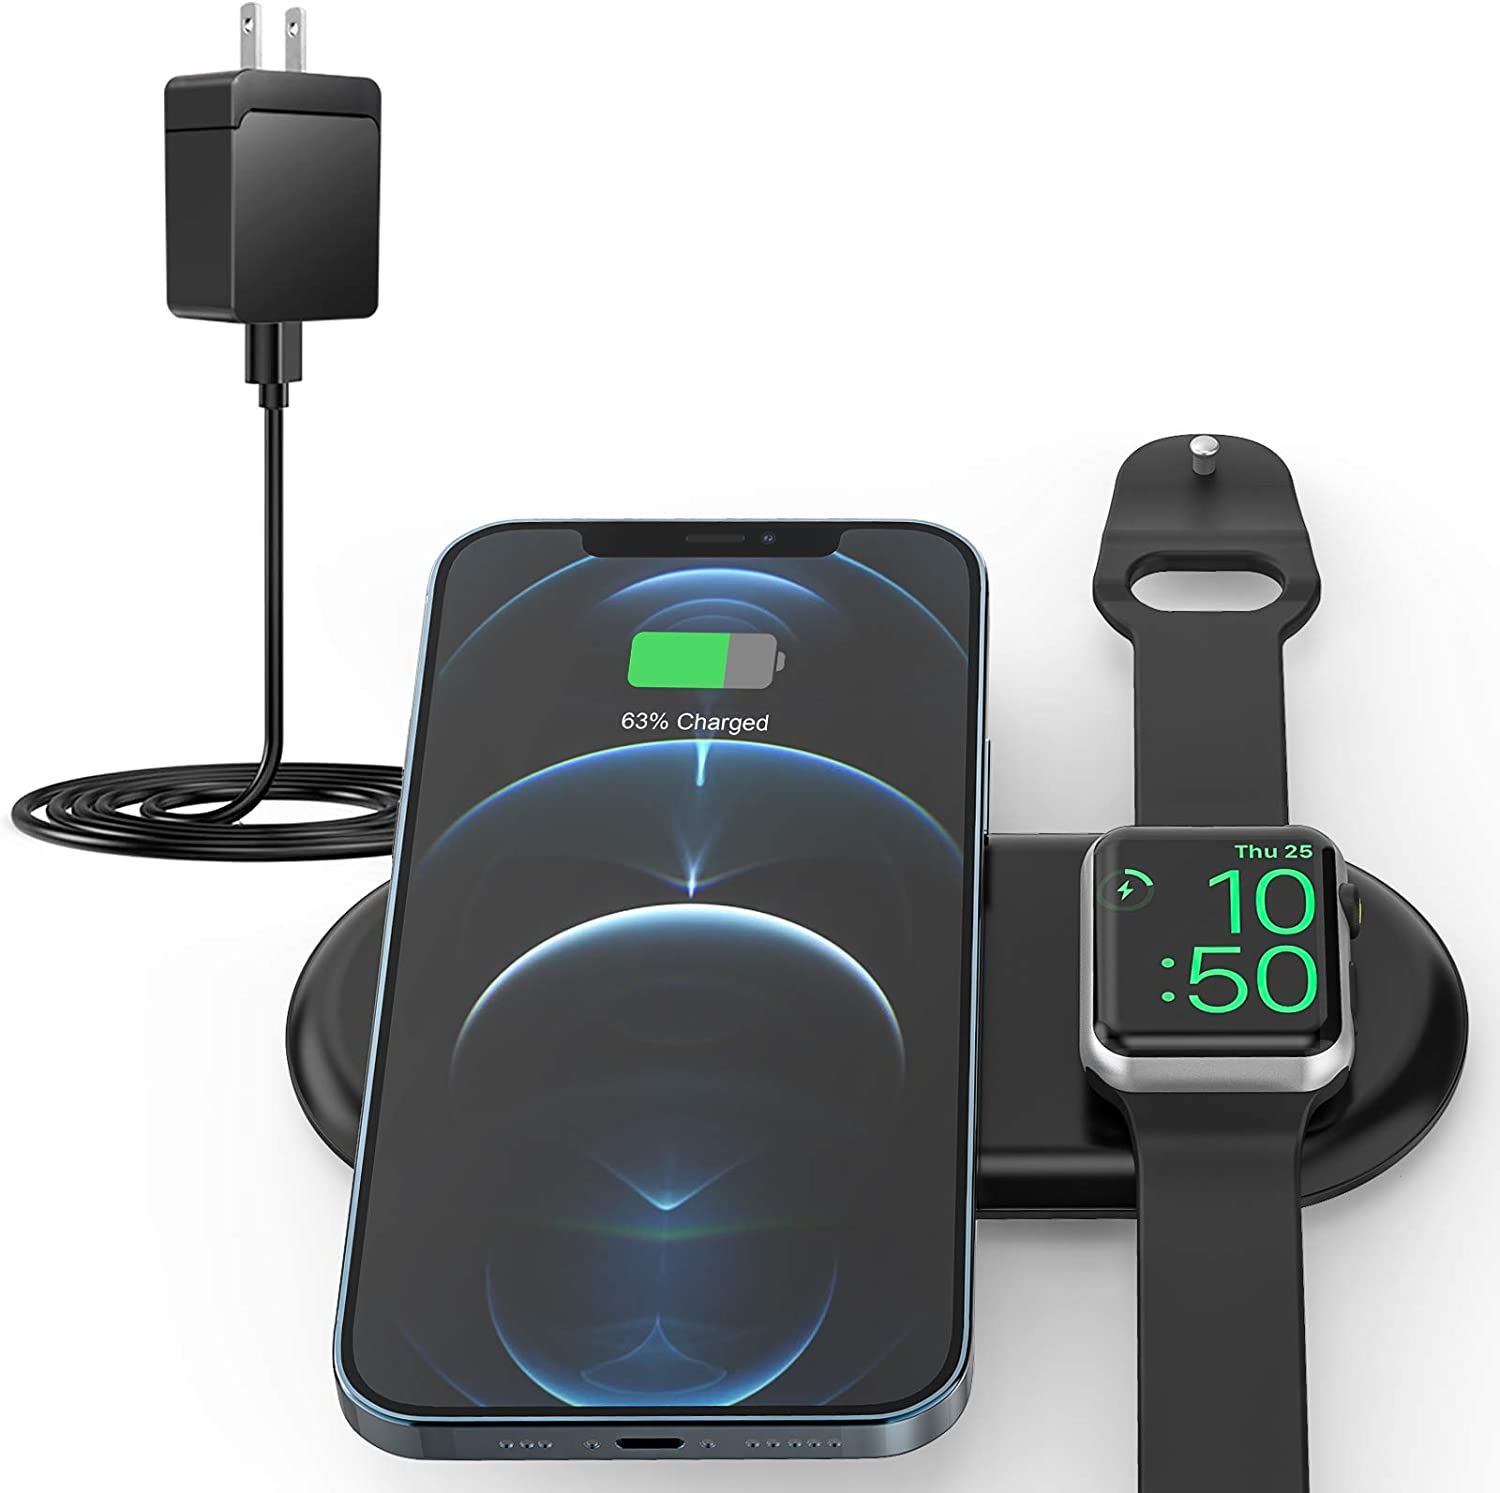 Update Wireless Charging Station Dock,2 in 1 Portable Wireless Charger Pad Compatible Apple Watch Series 6 5 4 3 2 1 SE Nike 44 40 42 38mm,Travel Fast Charger for AirPods iPhone with QC 3.0 Adapter